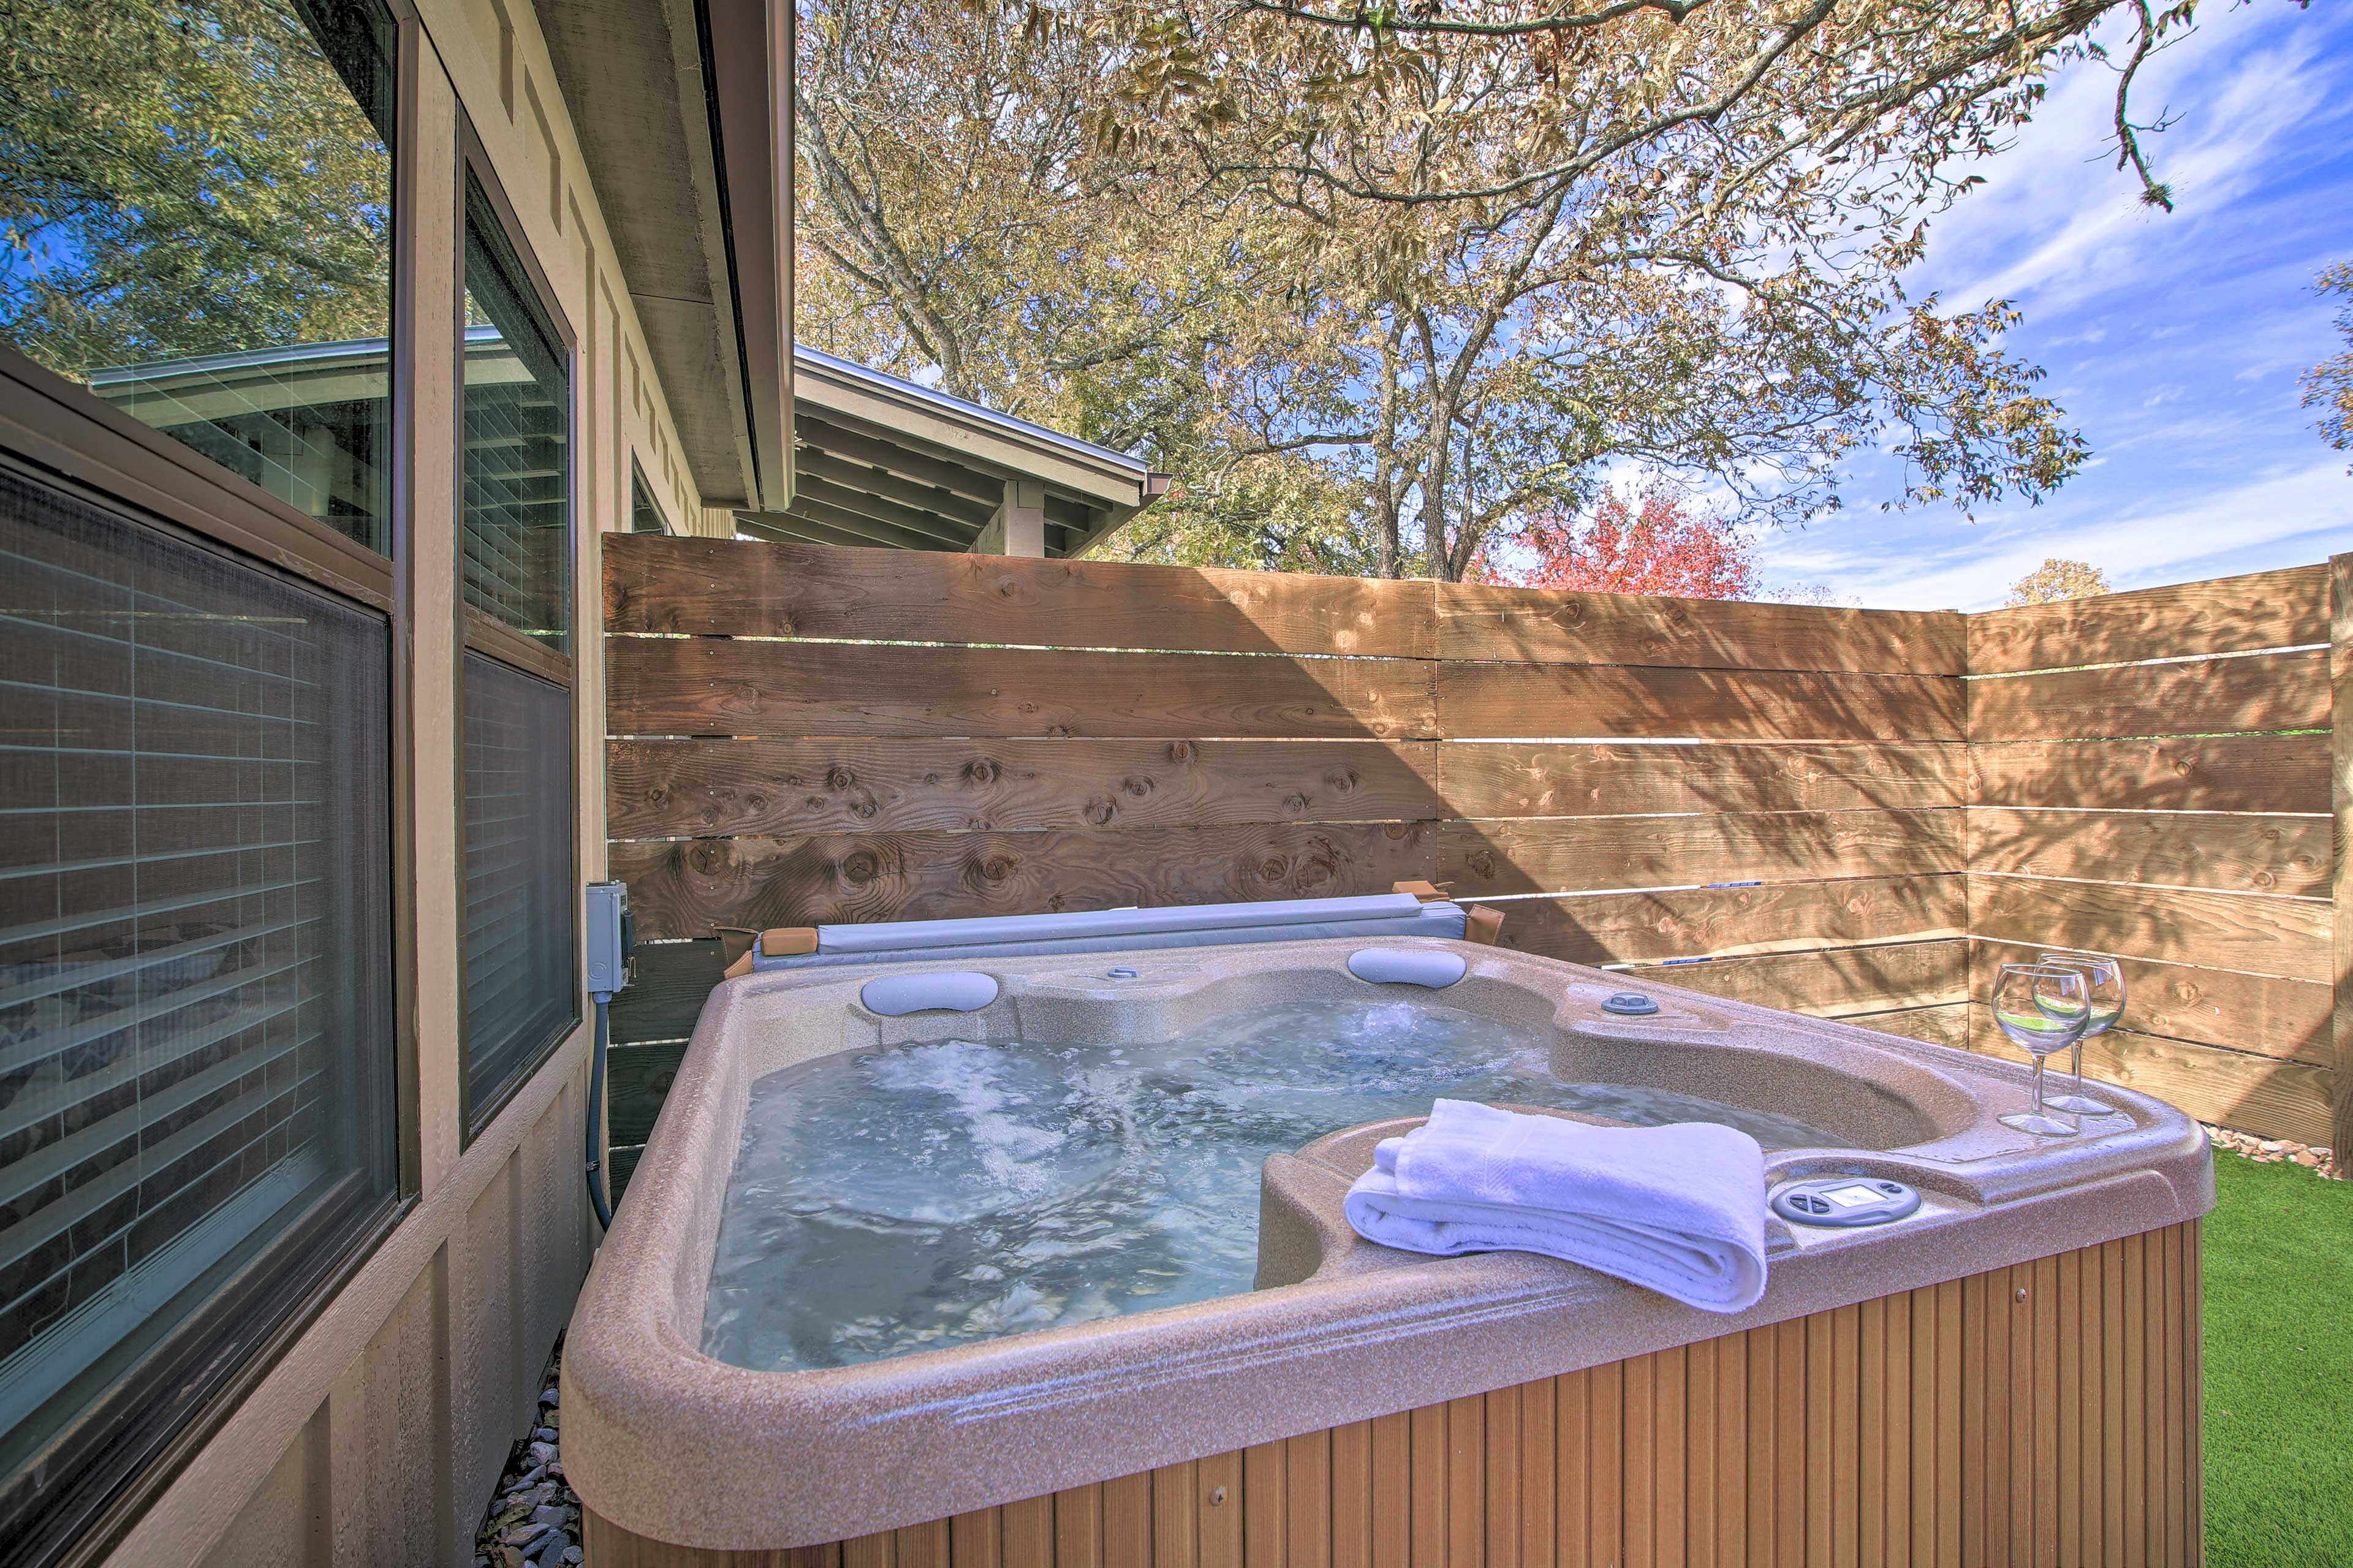 Unwind in the private hot tub after a day of fun in the sun!